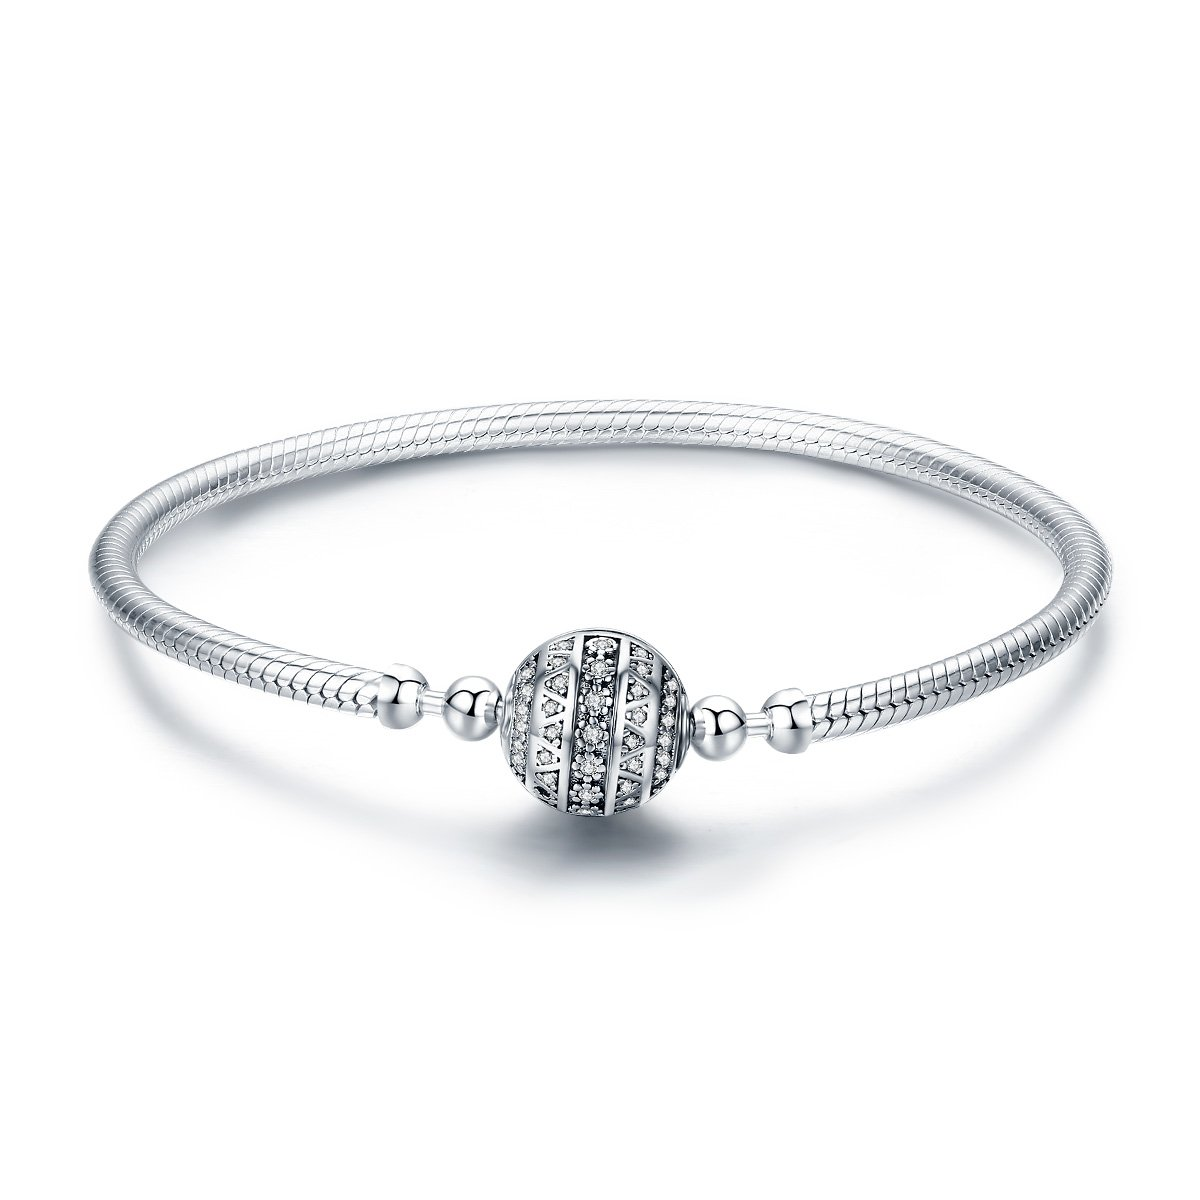 The Kiss Dazzling Clear CZ Round Clasp Snake Chain 925 Sterling Silver Charm Bracelet